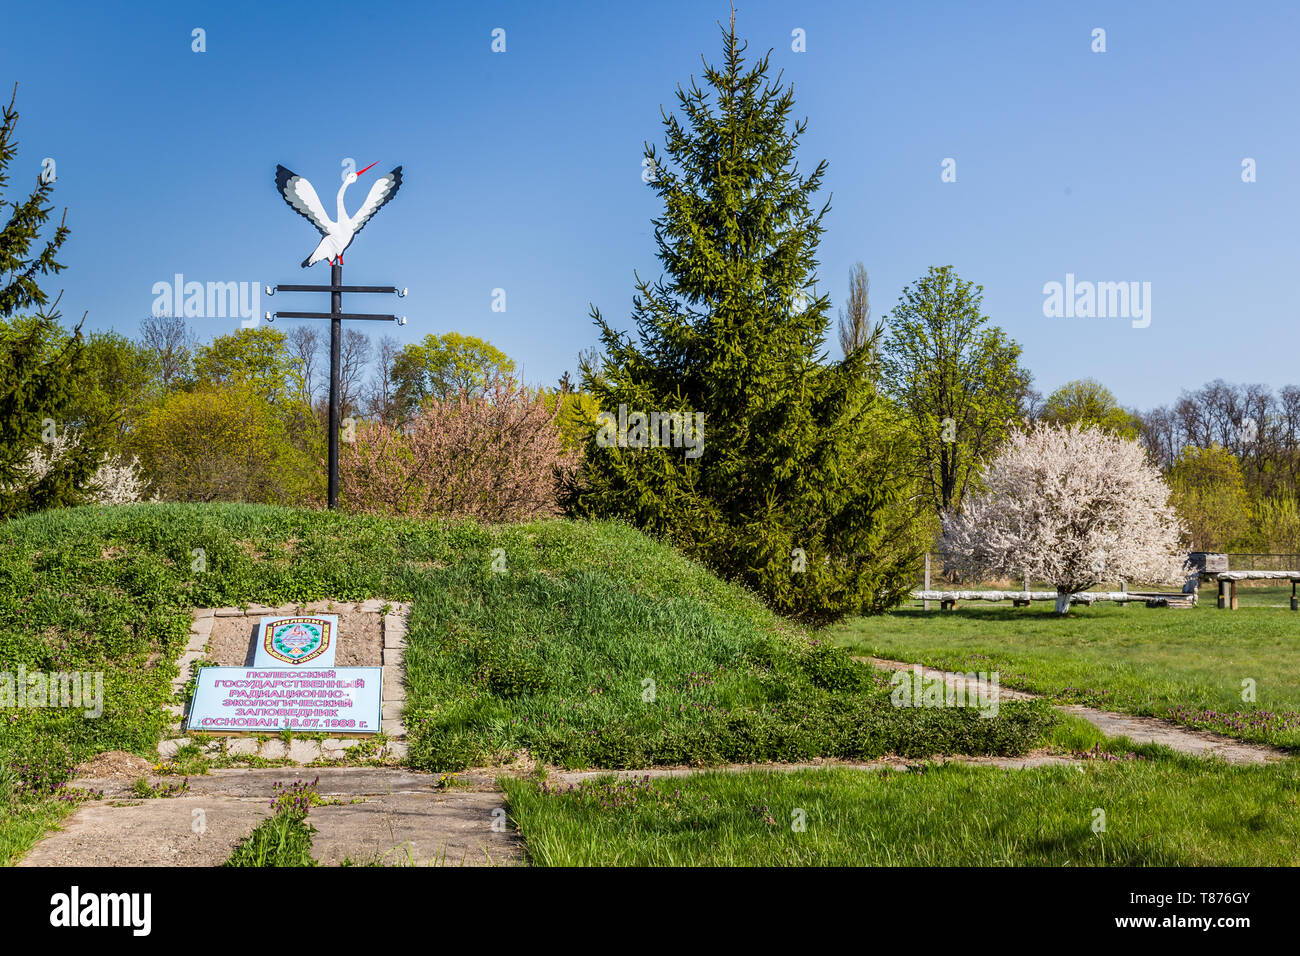 Chojniki, Belarus, - April 26, 2019: Chernobyl accident memorial in the Belarus exclusion zone contaminated with radioactive fallout in 1986. - Stock Image